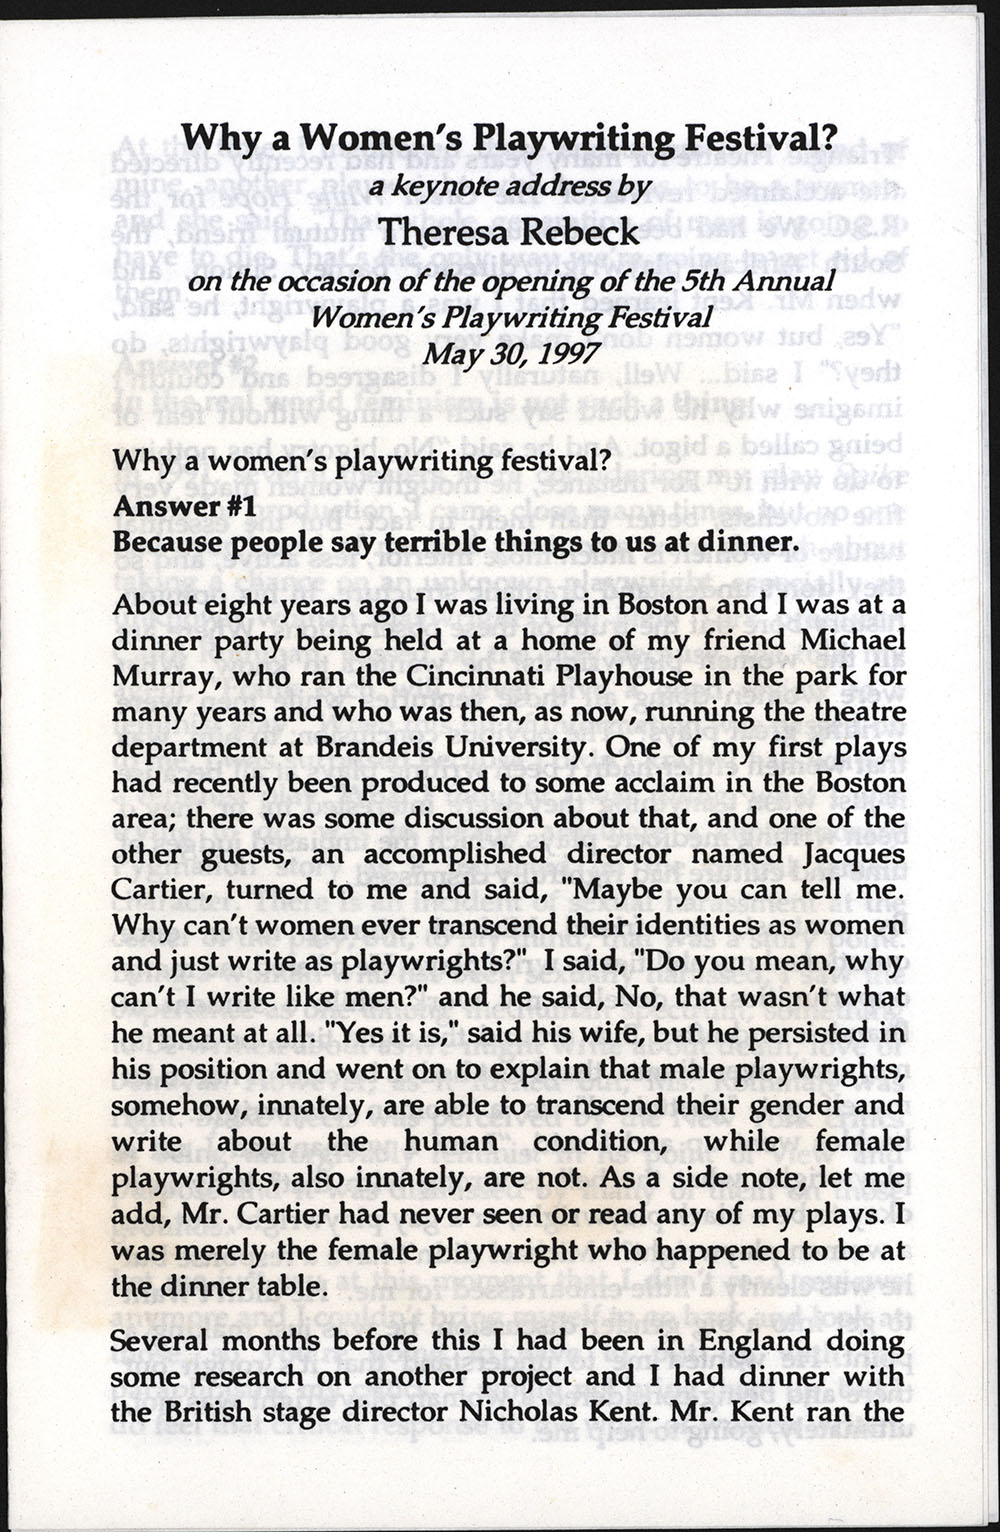 """""""Why a Women's Playwriting Festival?"""" (speech), (Providence, Rhode Island): 5th Annual Women's Playwriting Festival, May 30, 1997"""